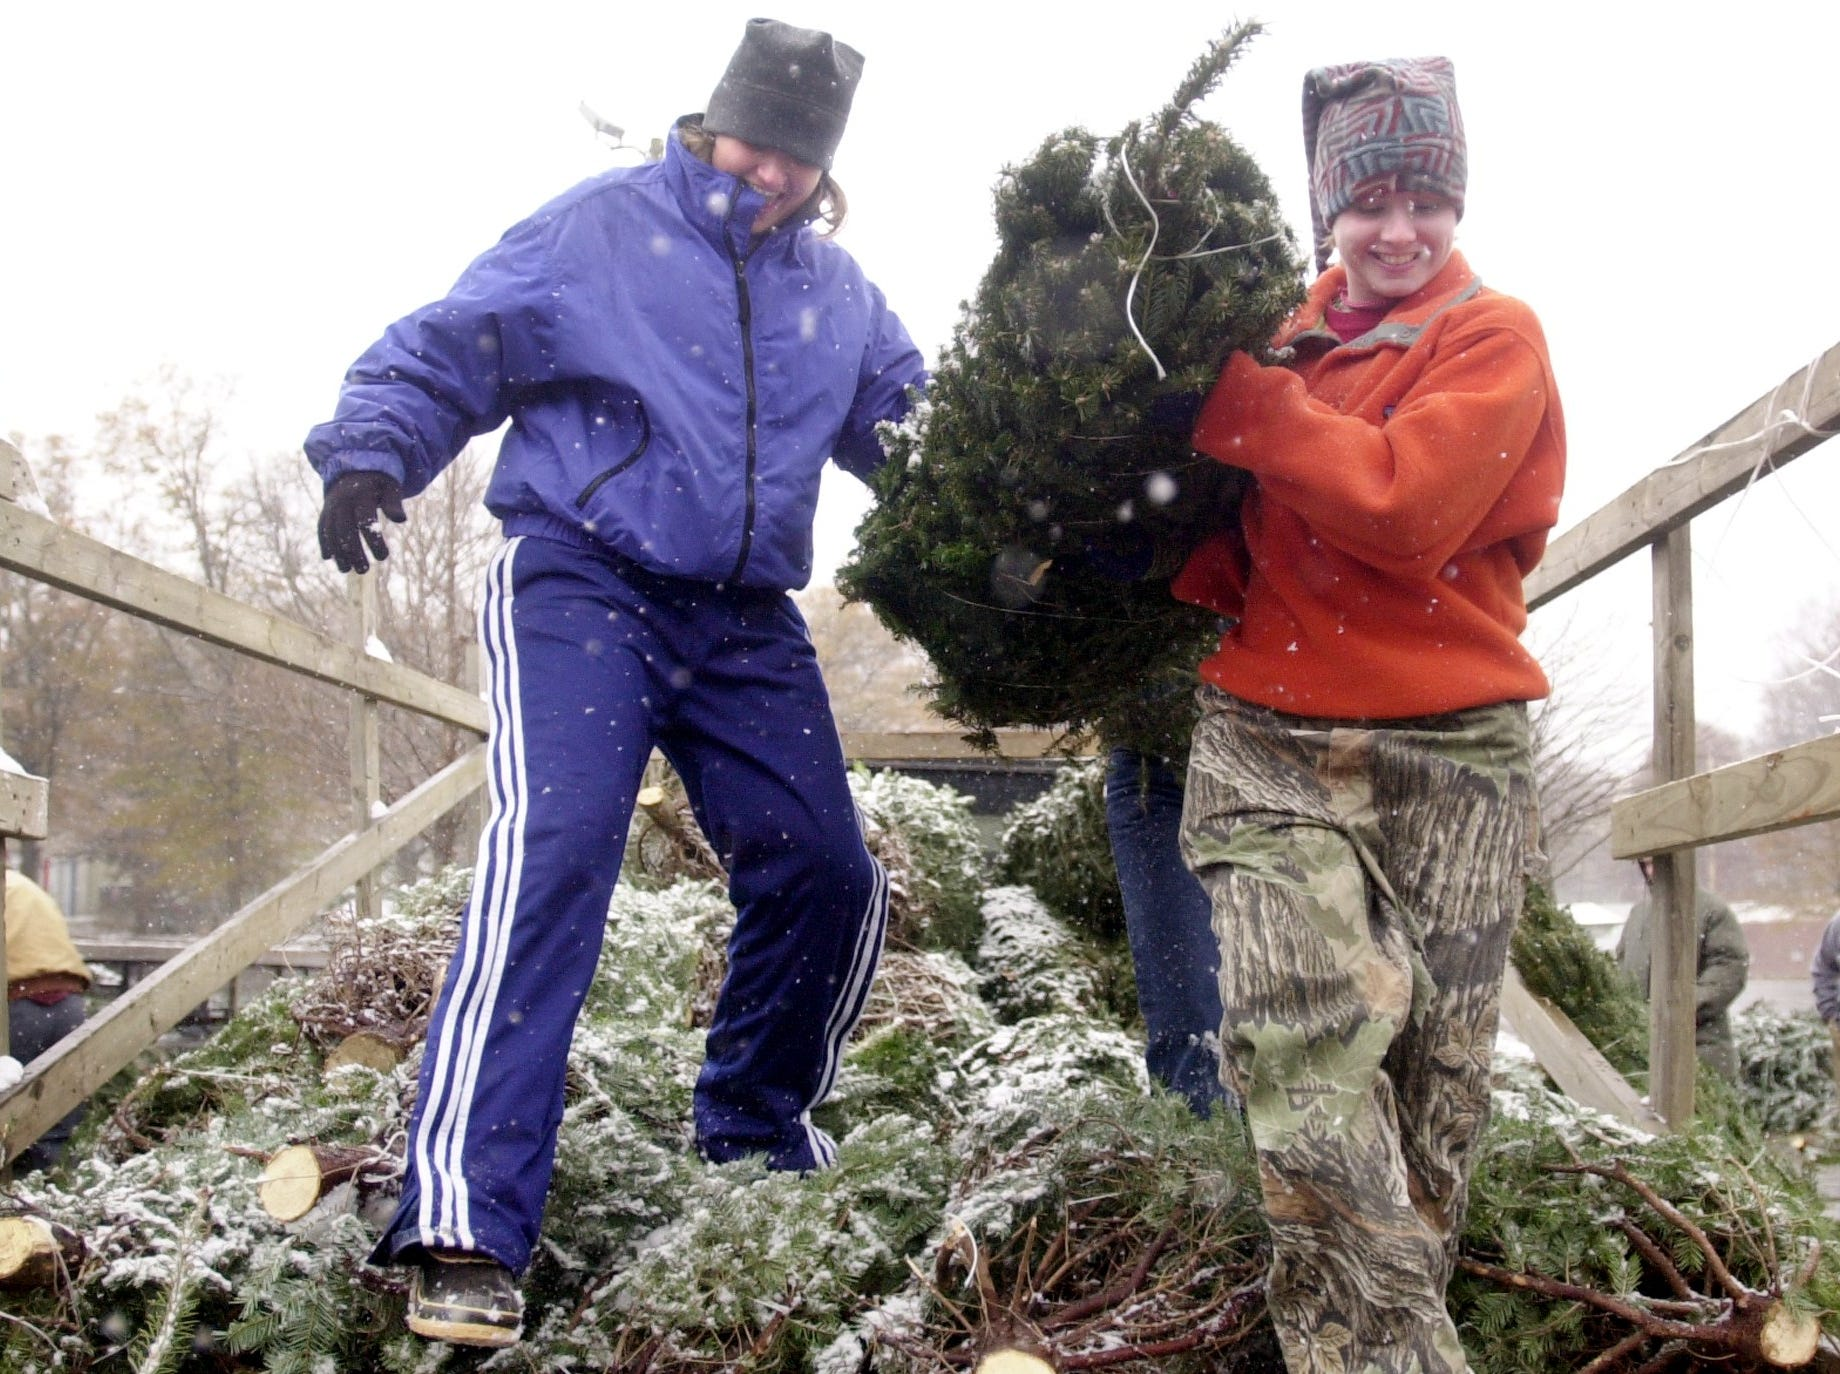 Greenville High School seniors Sarah Bishop,17 and Krissie Barr,17 unloaded Christmas trees at Sirrine Stadium for a fundraiser Sunday morning in the snow December 3, 2000.